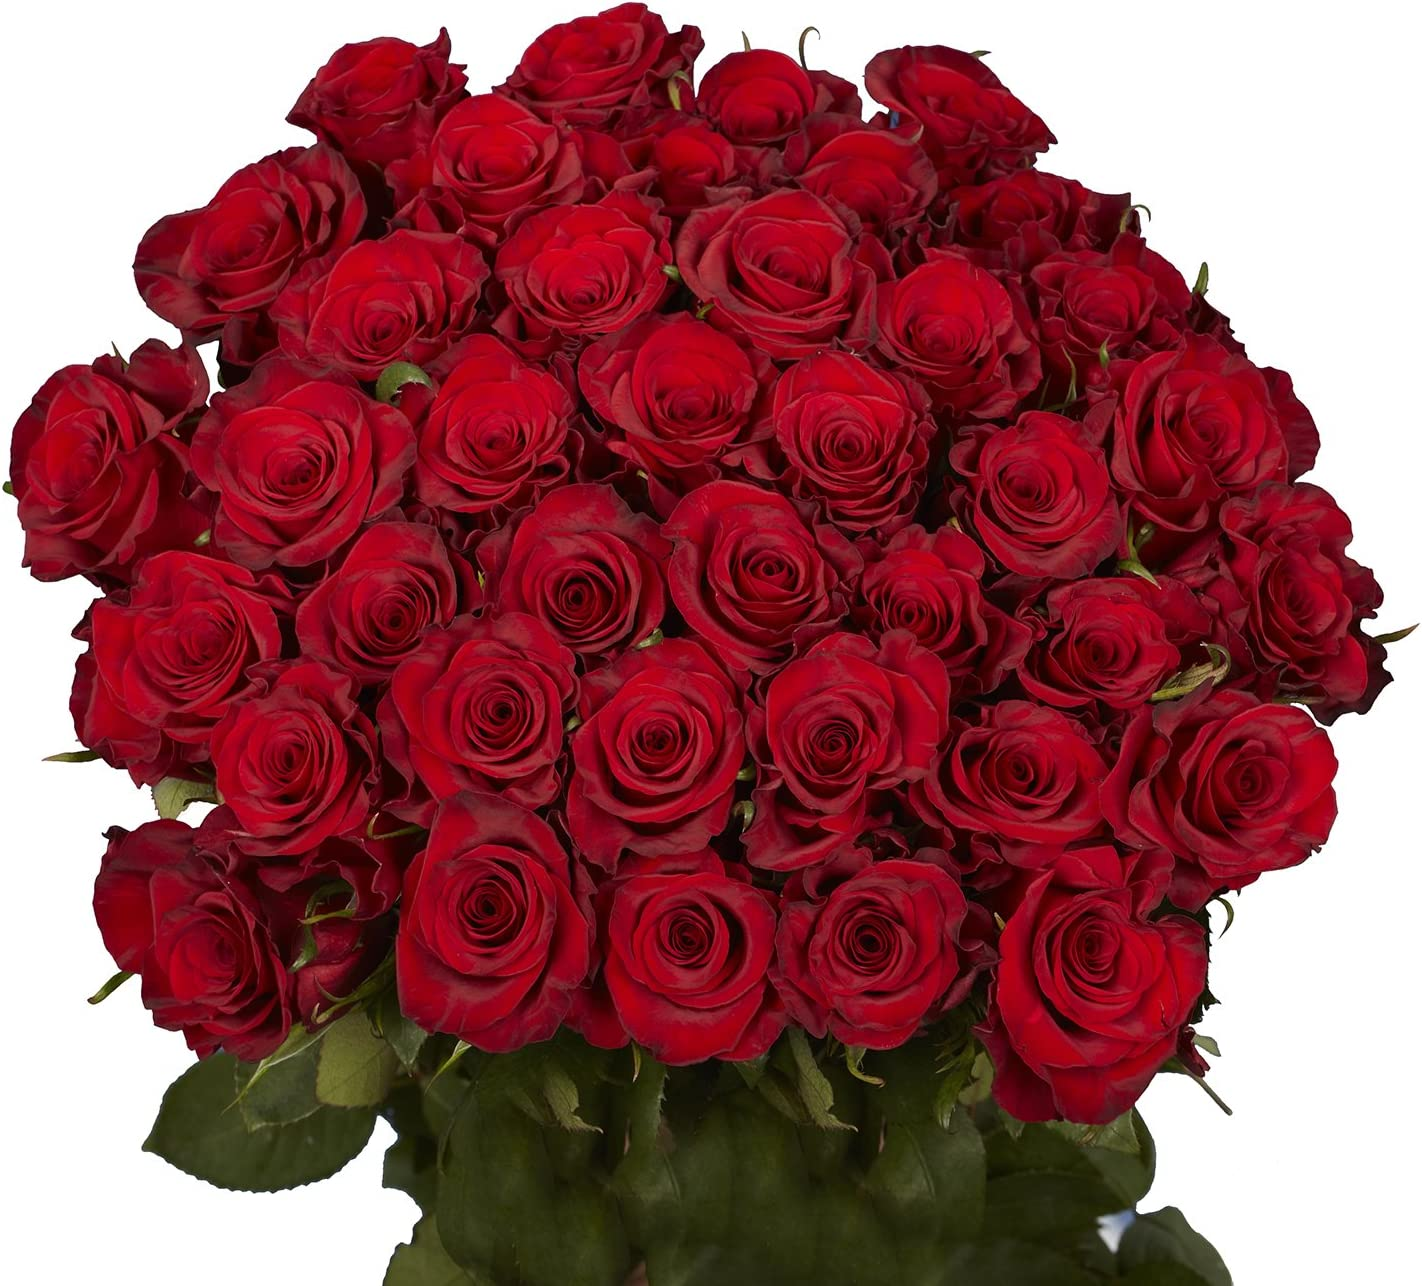 B00B2PN1E4 GlobalRose 50 Red Roses - Fresh Flowers- Delivery By Thursday April 23 81oU3AvHlDL